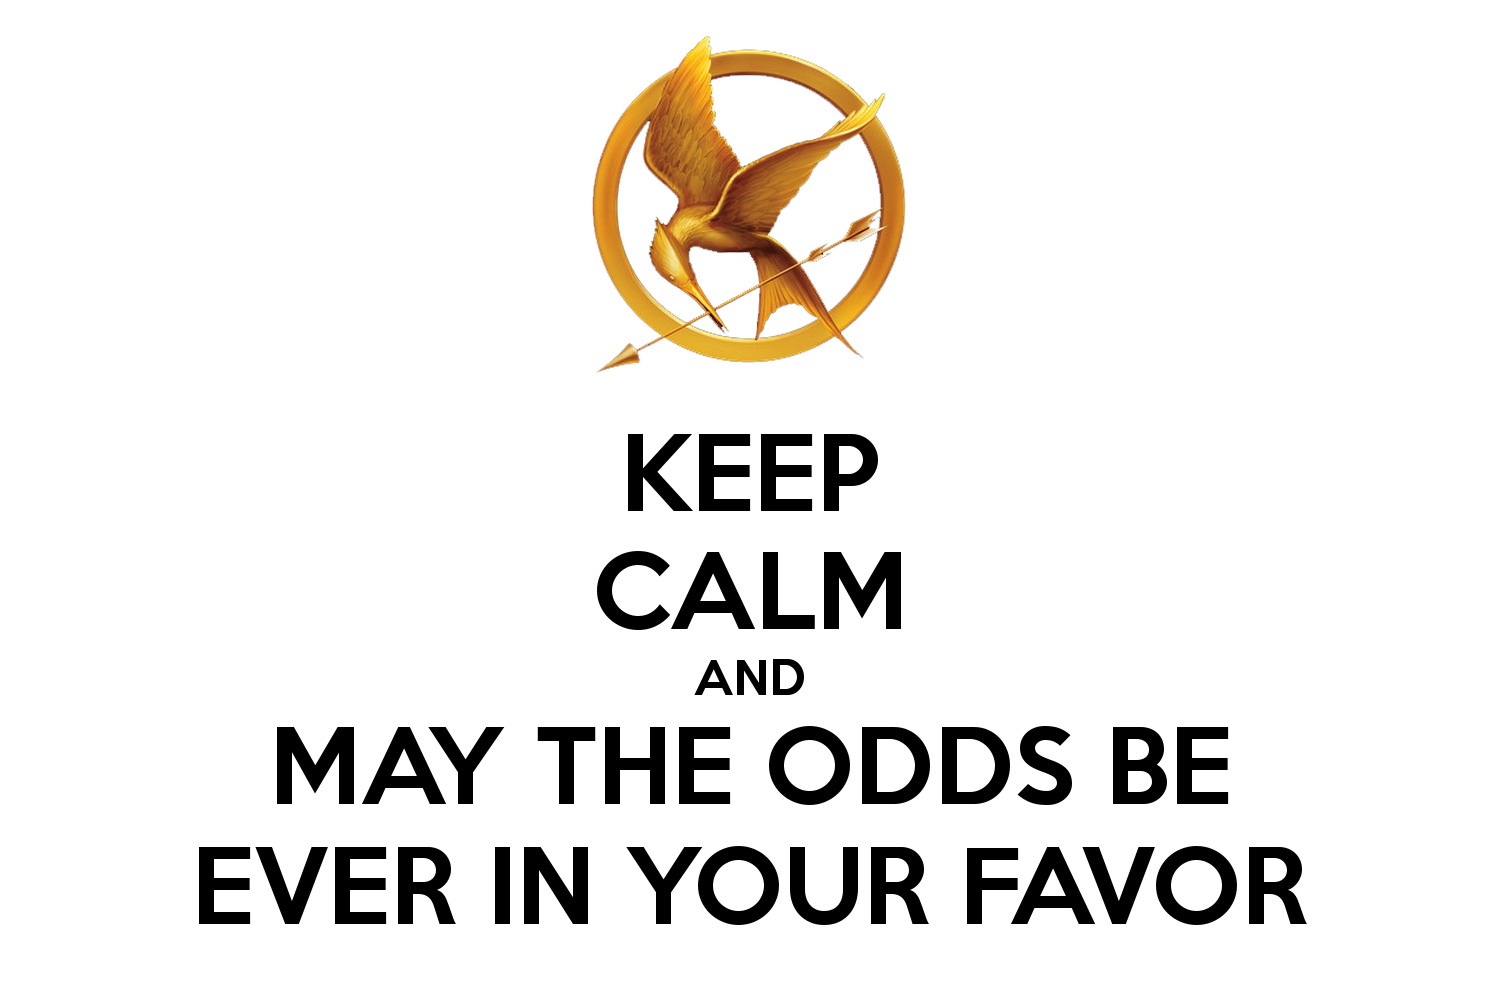 keep-calm-and-may-the-odds-be-ever-in-your-favor-328